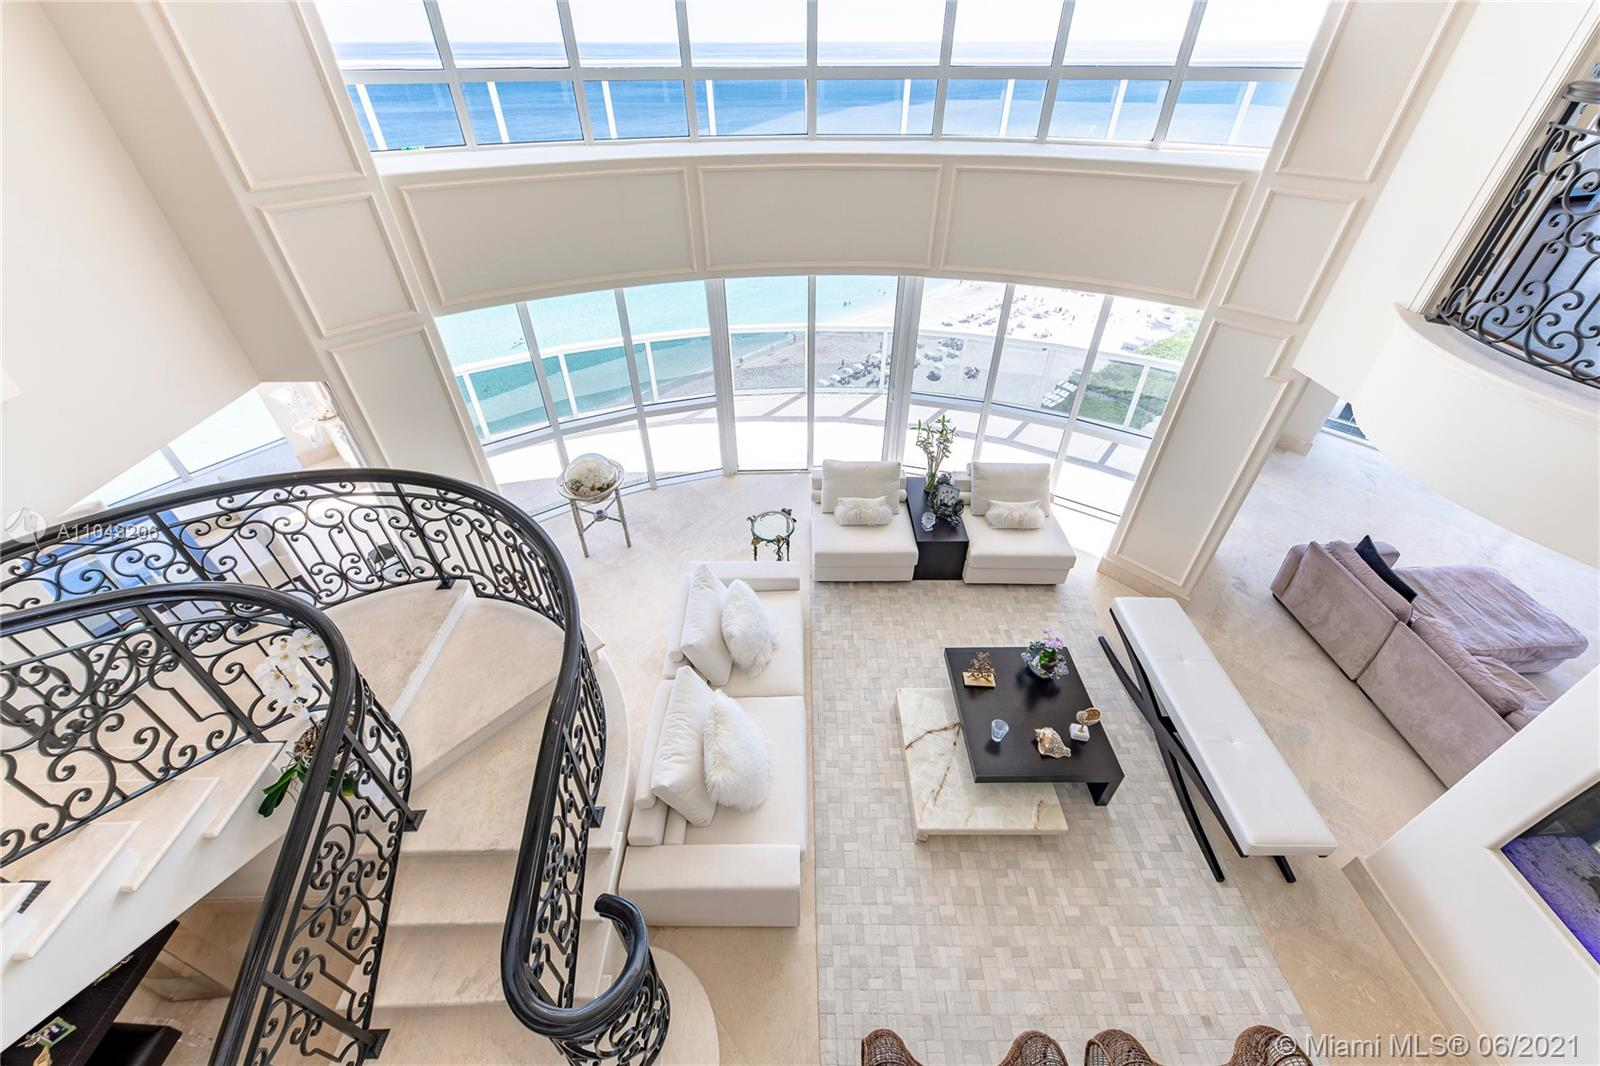 18201 Collins Ave, Unit #1709 Luxury Real Estate